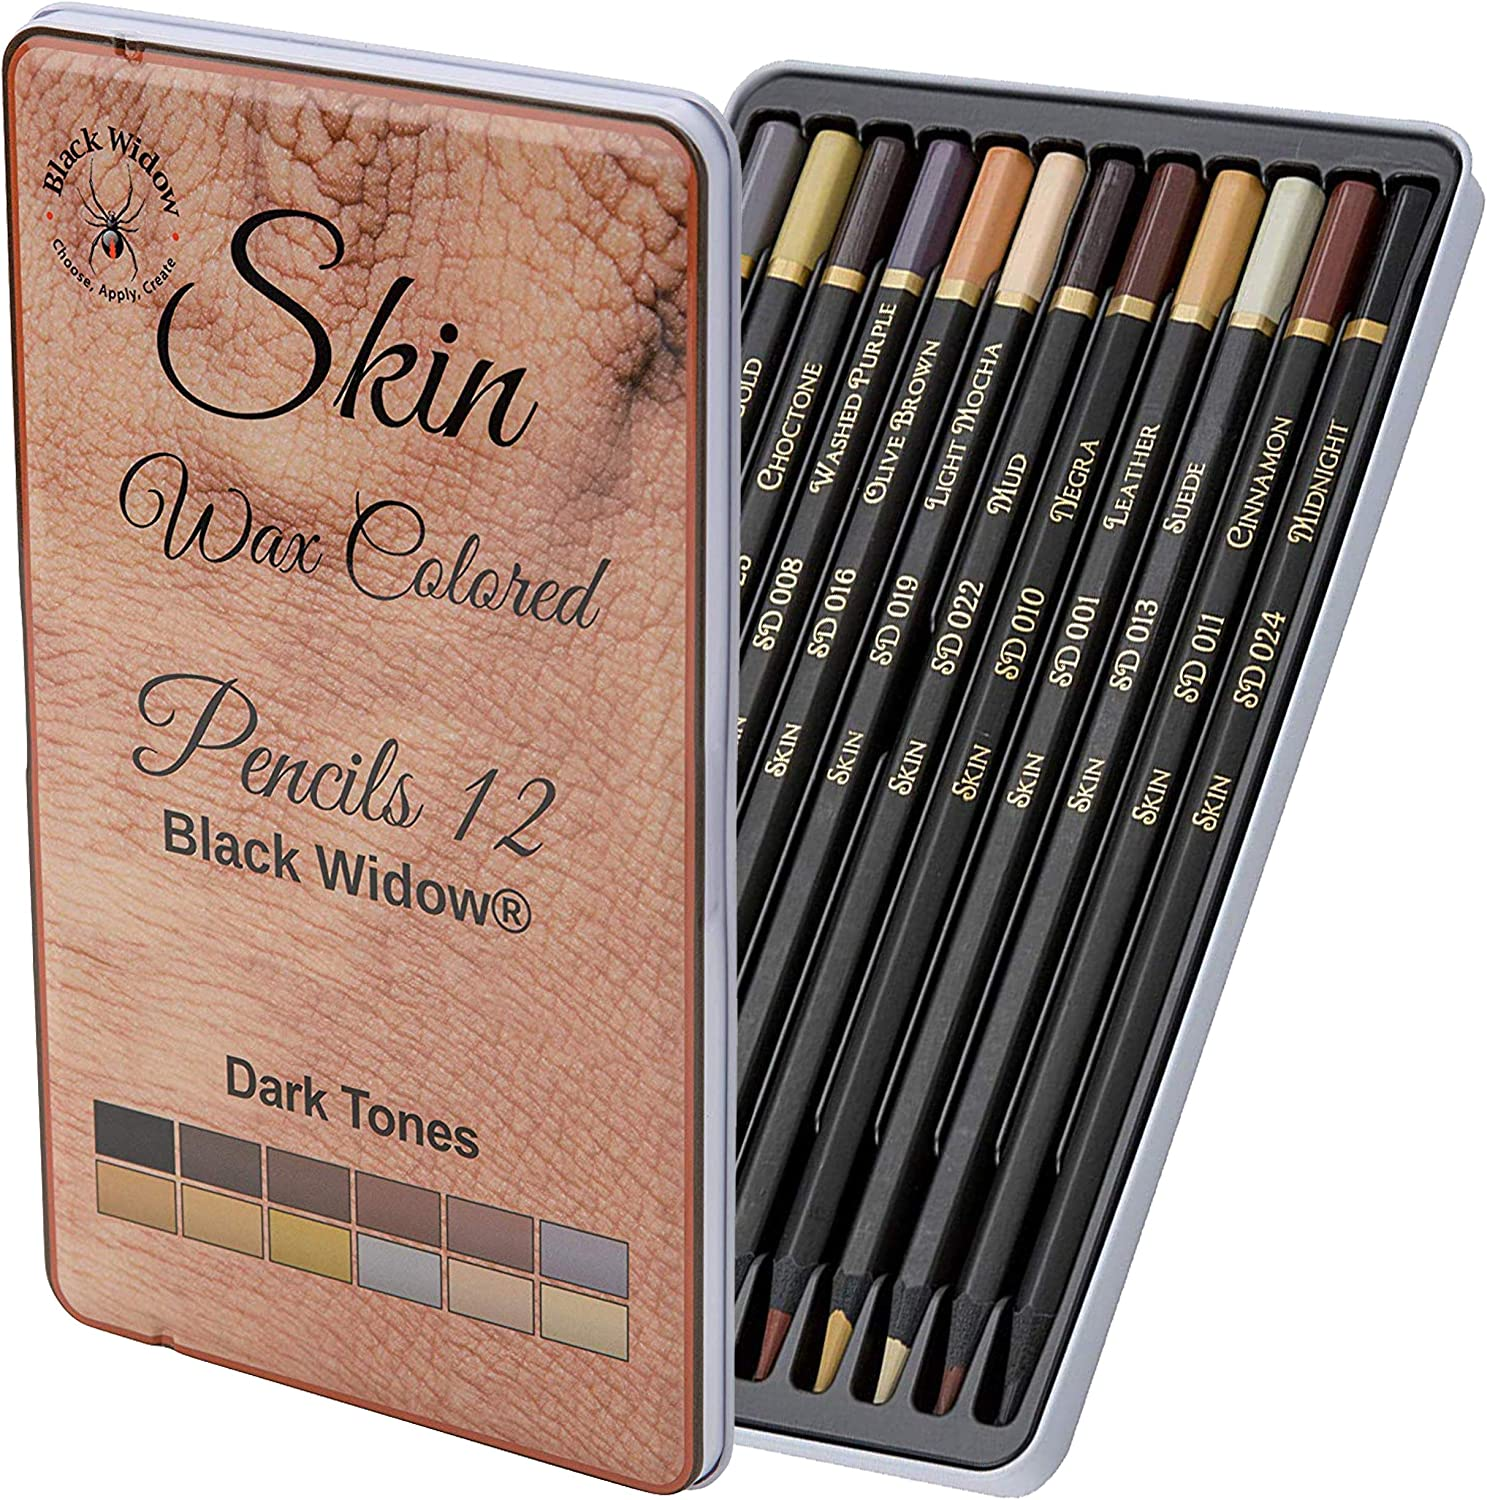 Black Widow Skin Colored Pencils Max 88% OFF unisex Color Adults for -